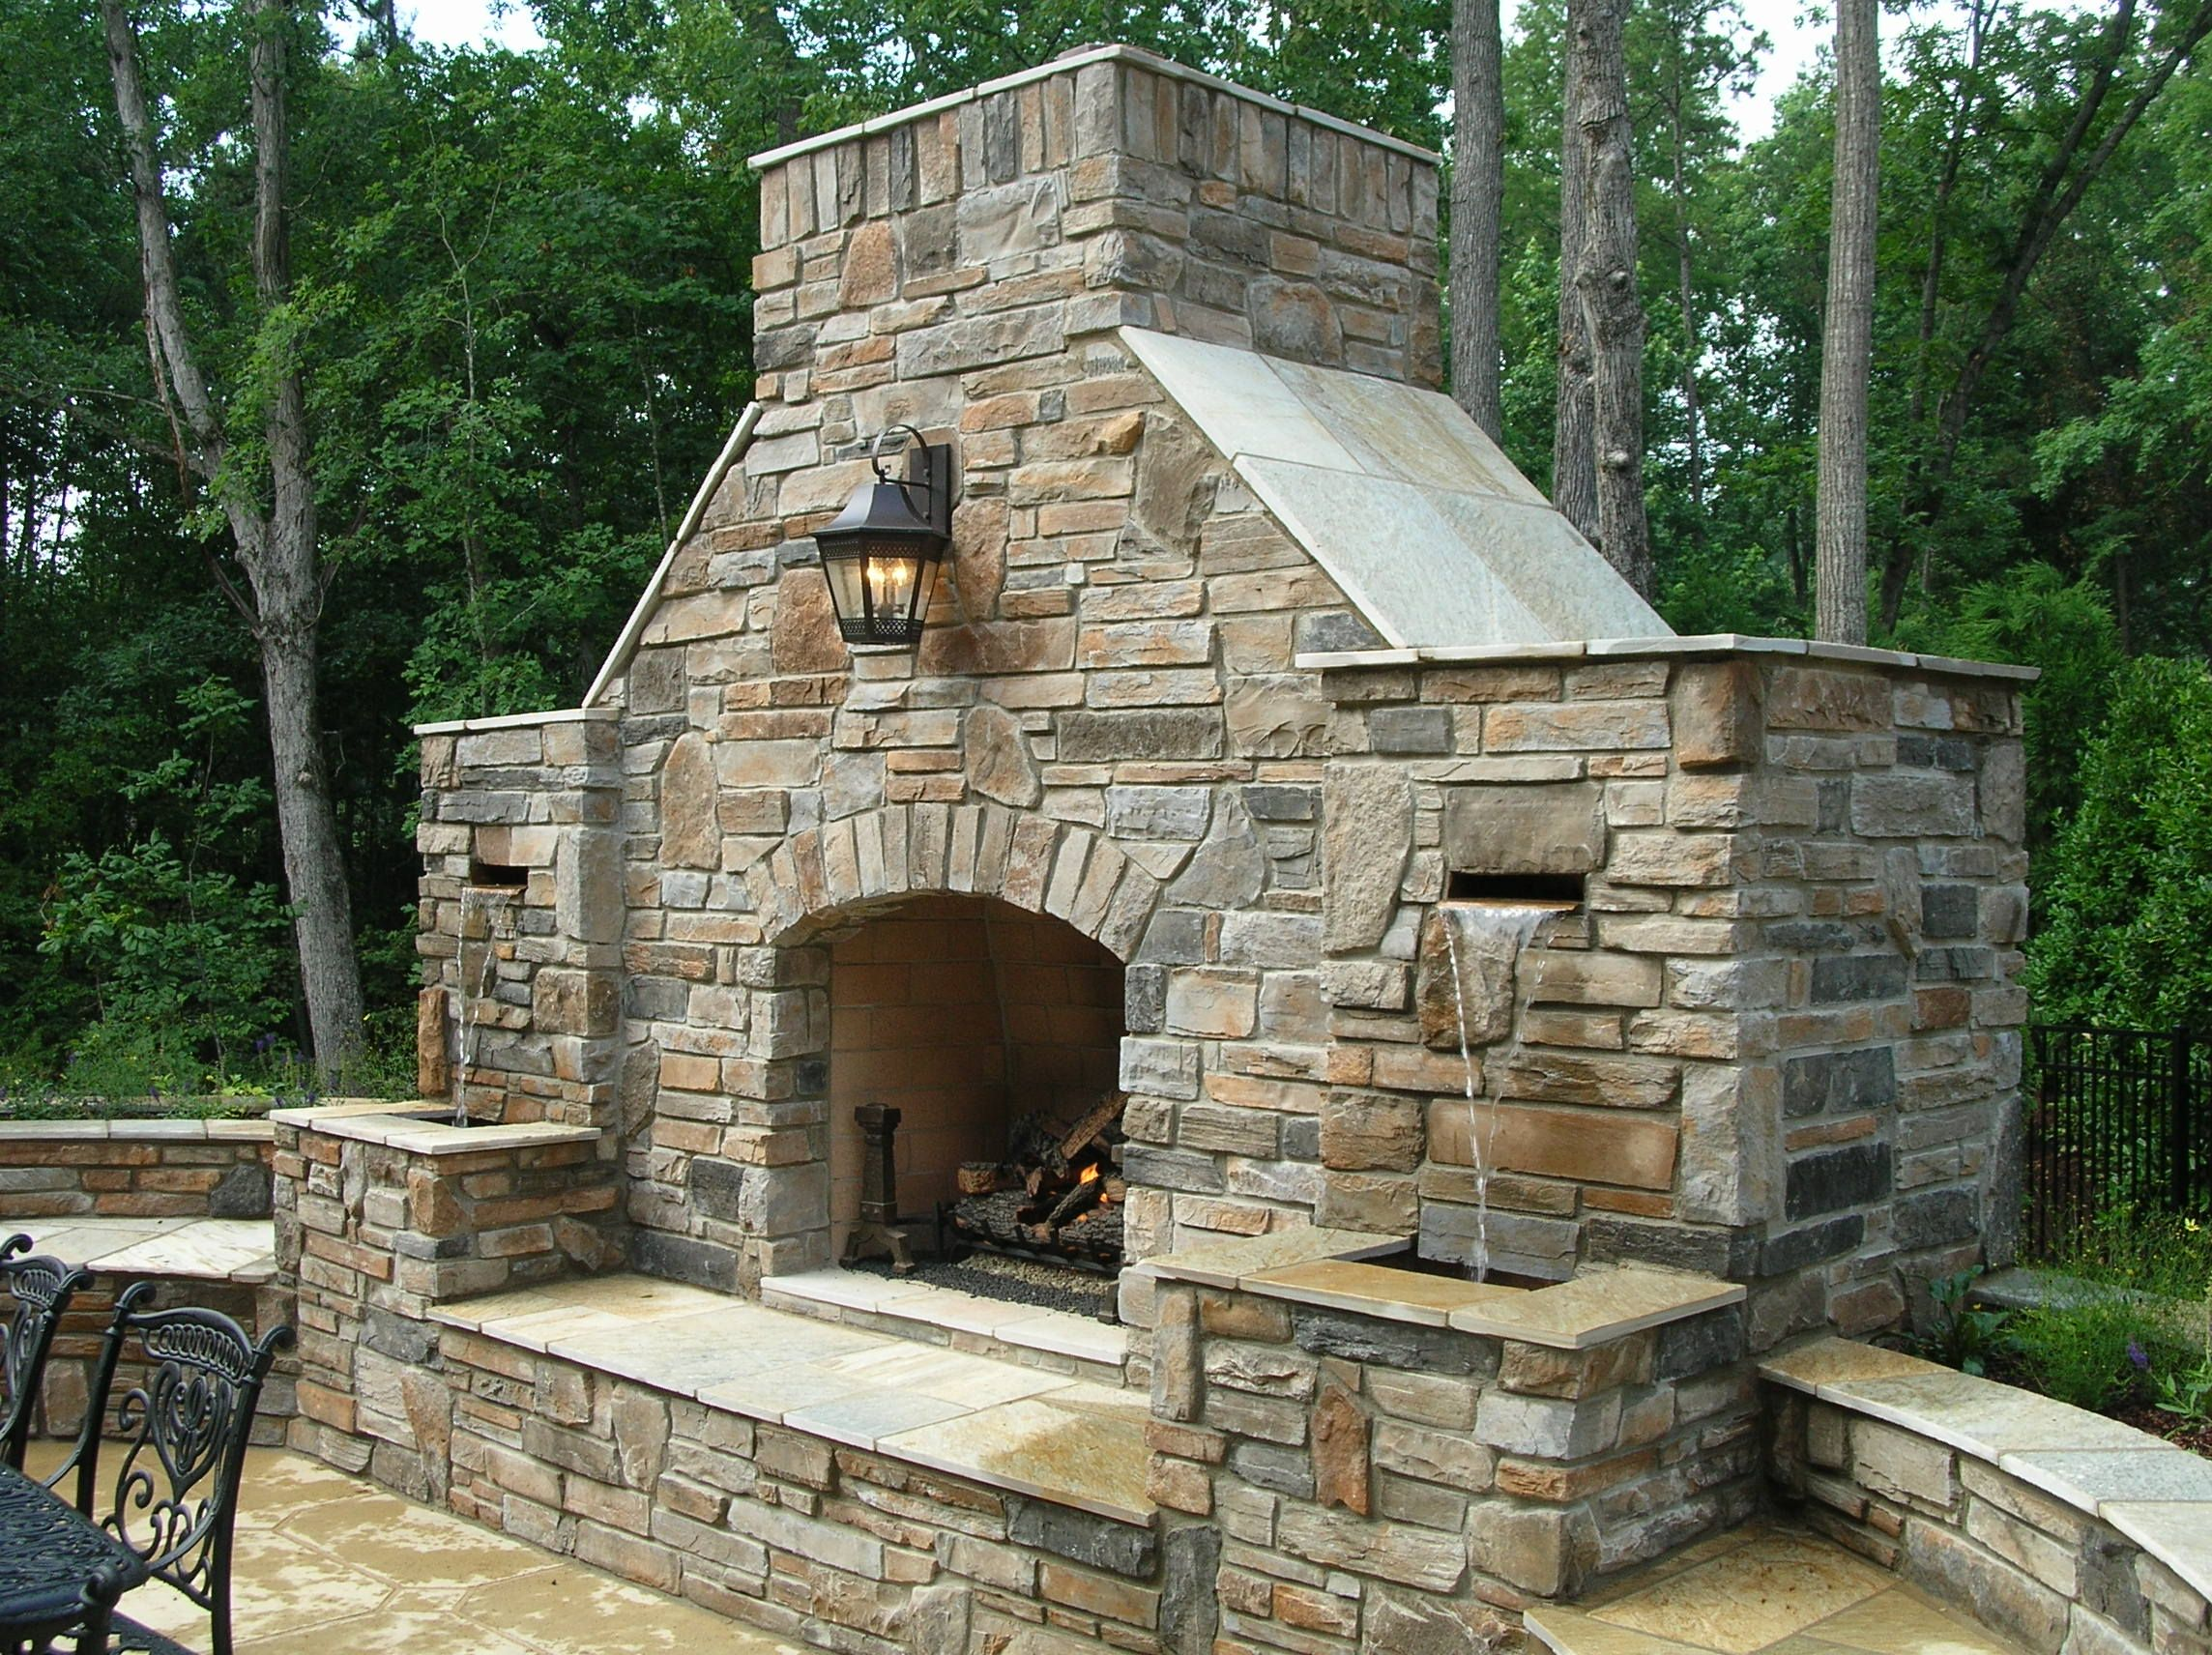 Outdoor Fireplace Design Ideas md wood outdoor fireplace grace design Combination Outdoor Fireplace And Water Fountain Outdoor Living Pictures Custom Outdoor Fireplace With Waterfalls